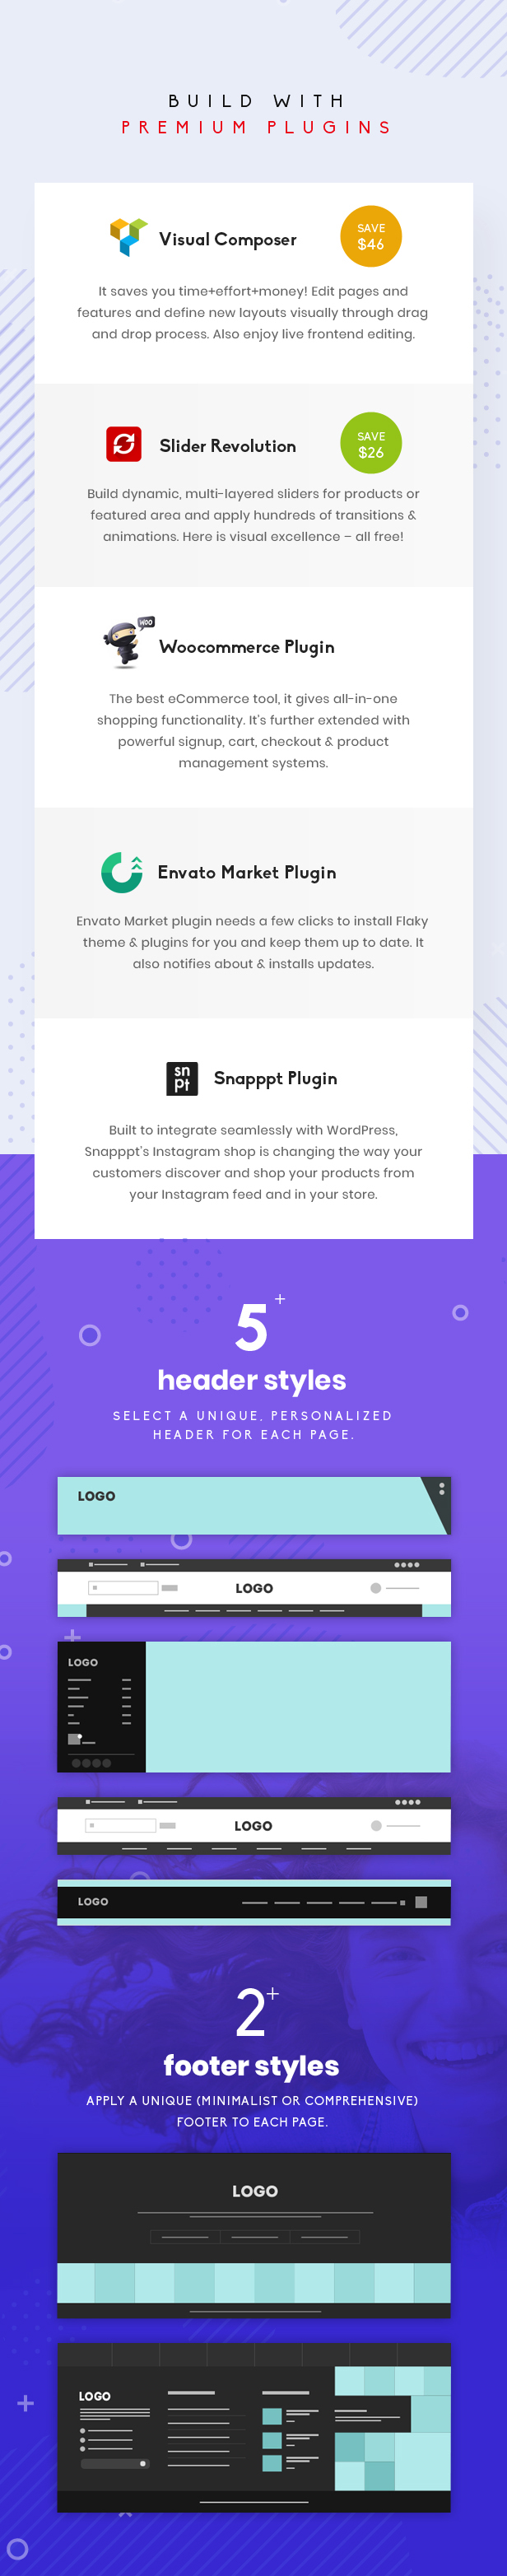 Flaky - A Responsive WooCommerce Theme for Online Shopping Websites - 5